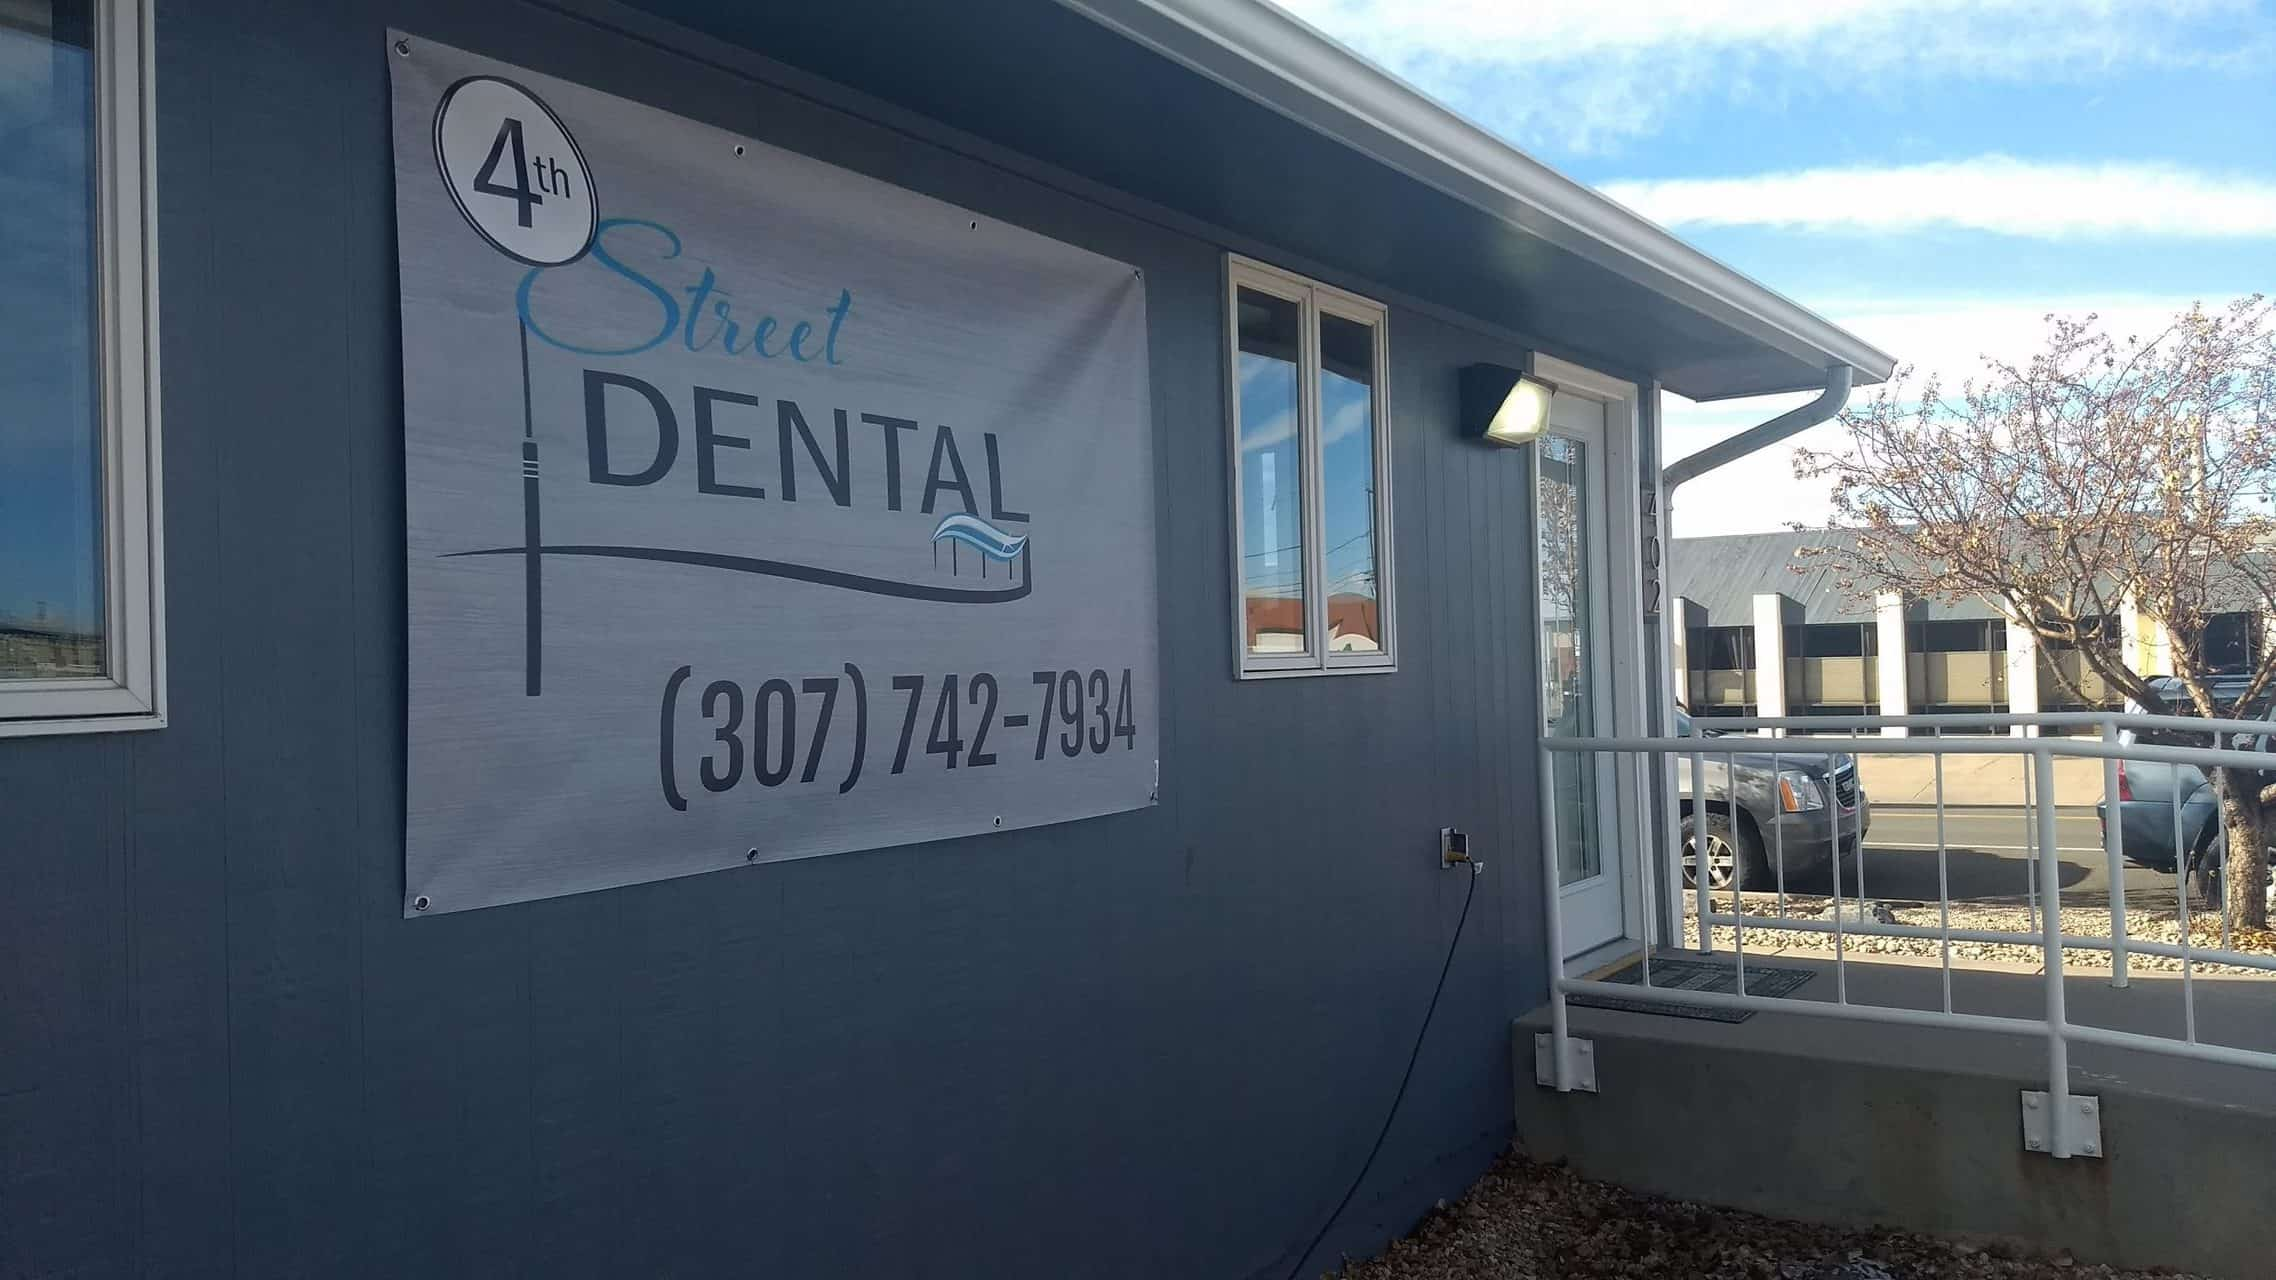 4th Street Dental Exterior